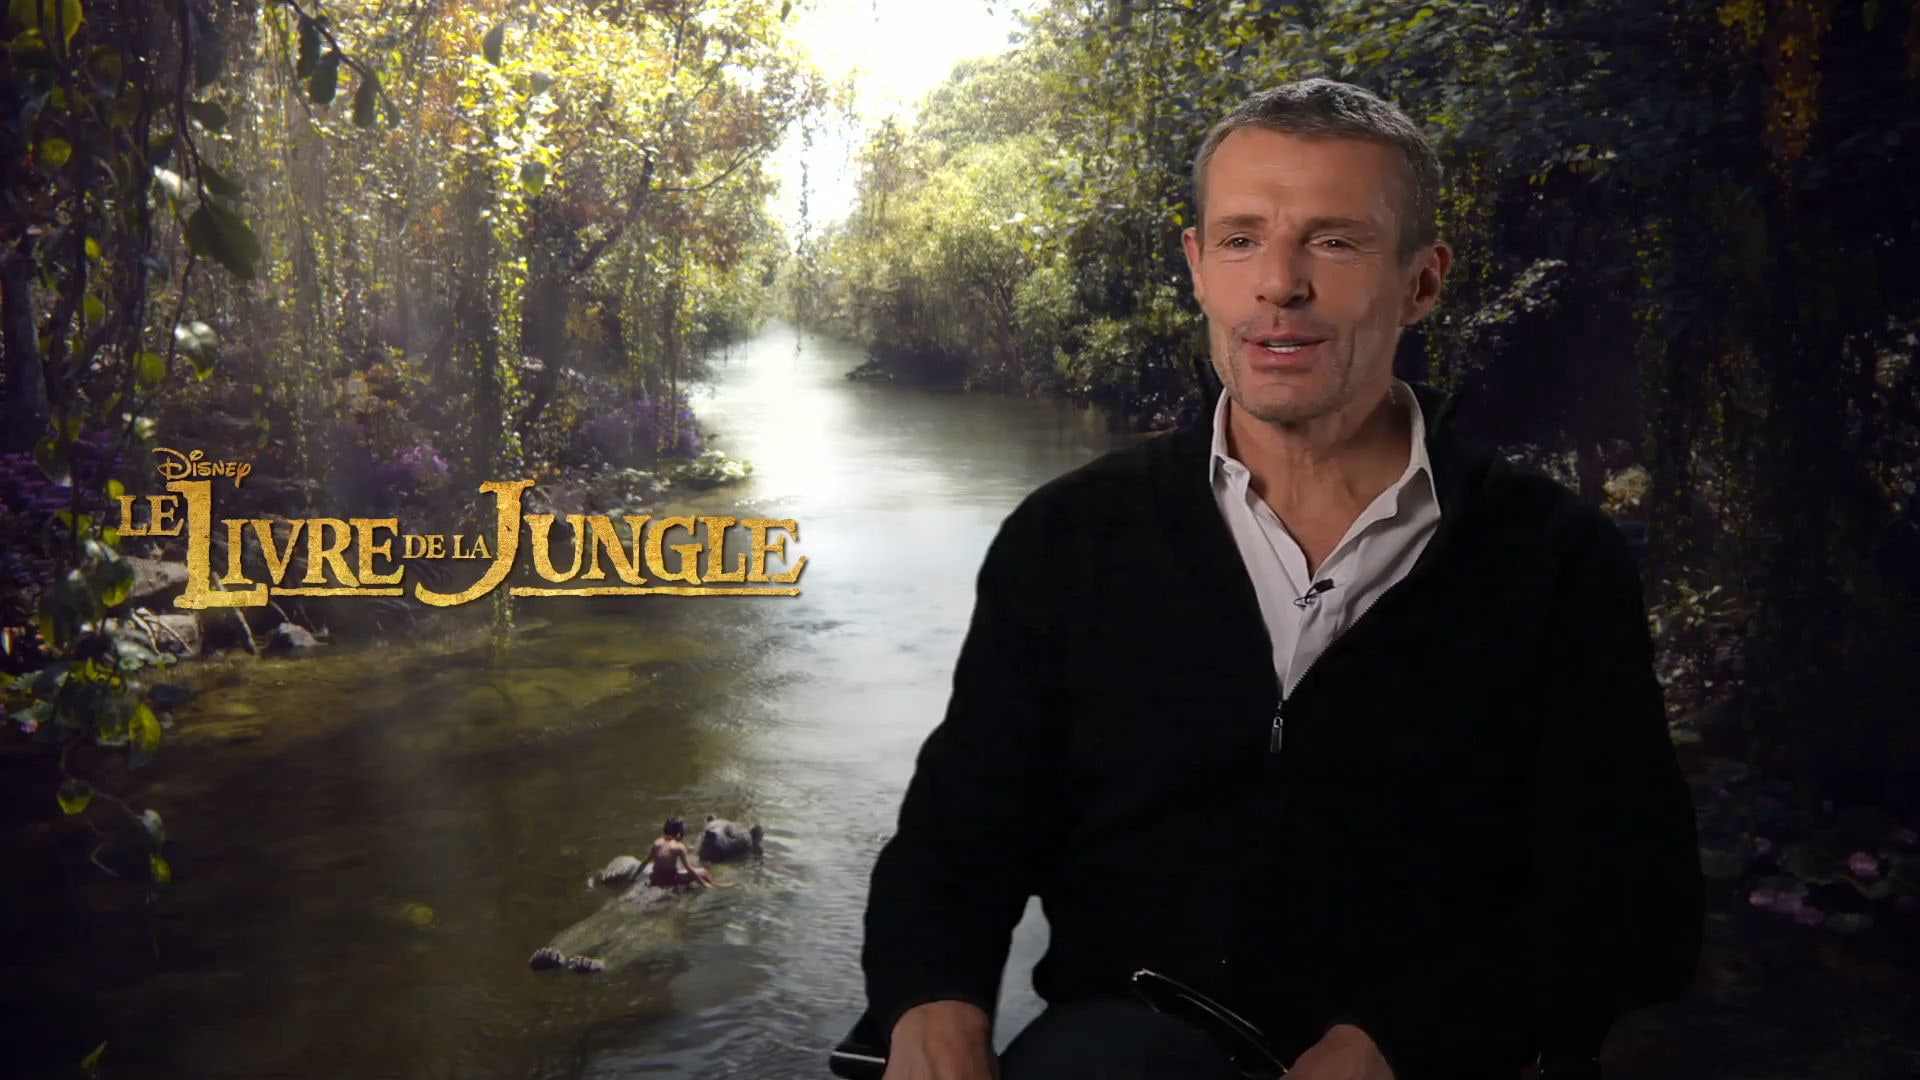 Le Livre De La Jungle - Interview : Lambert Wilson est Baloo